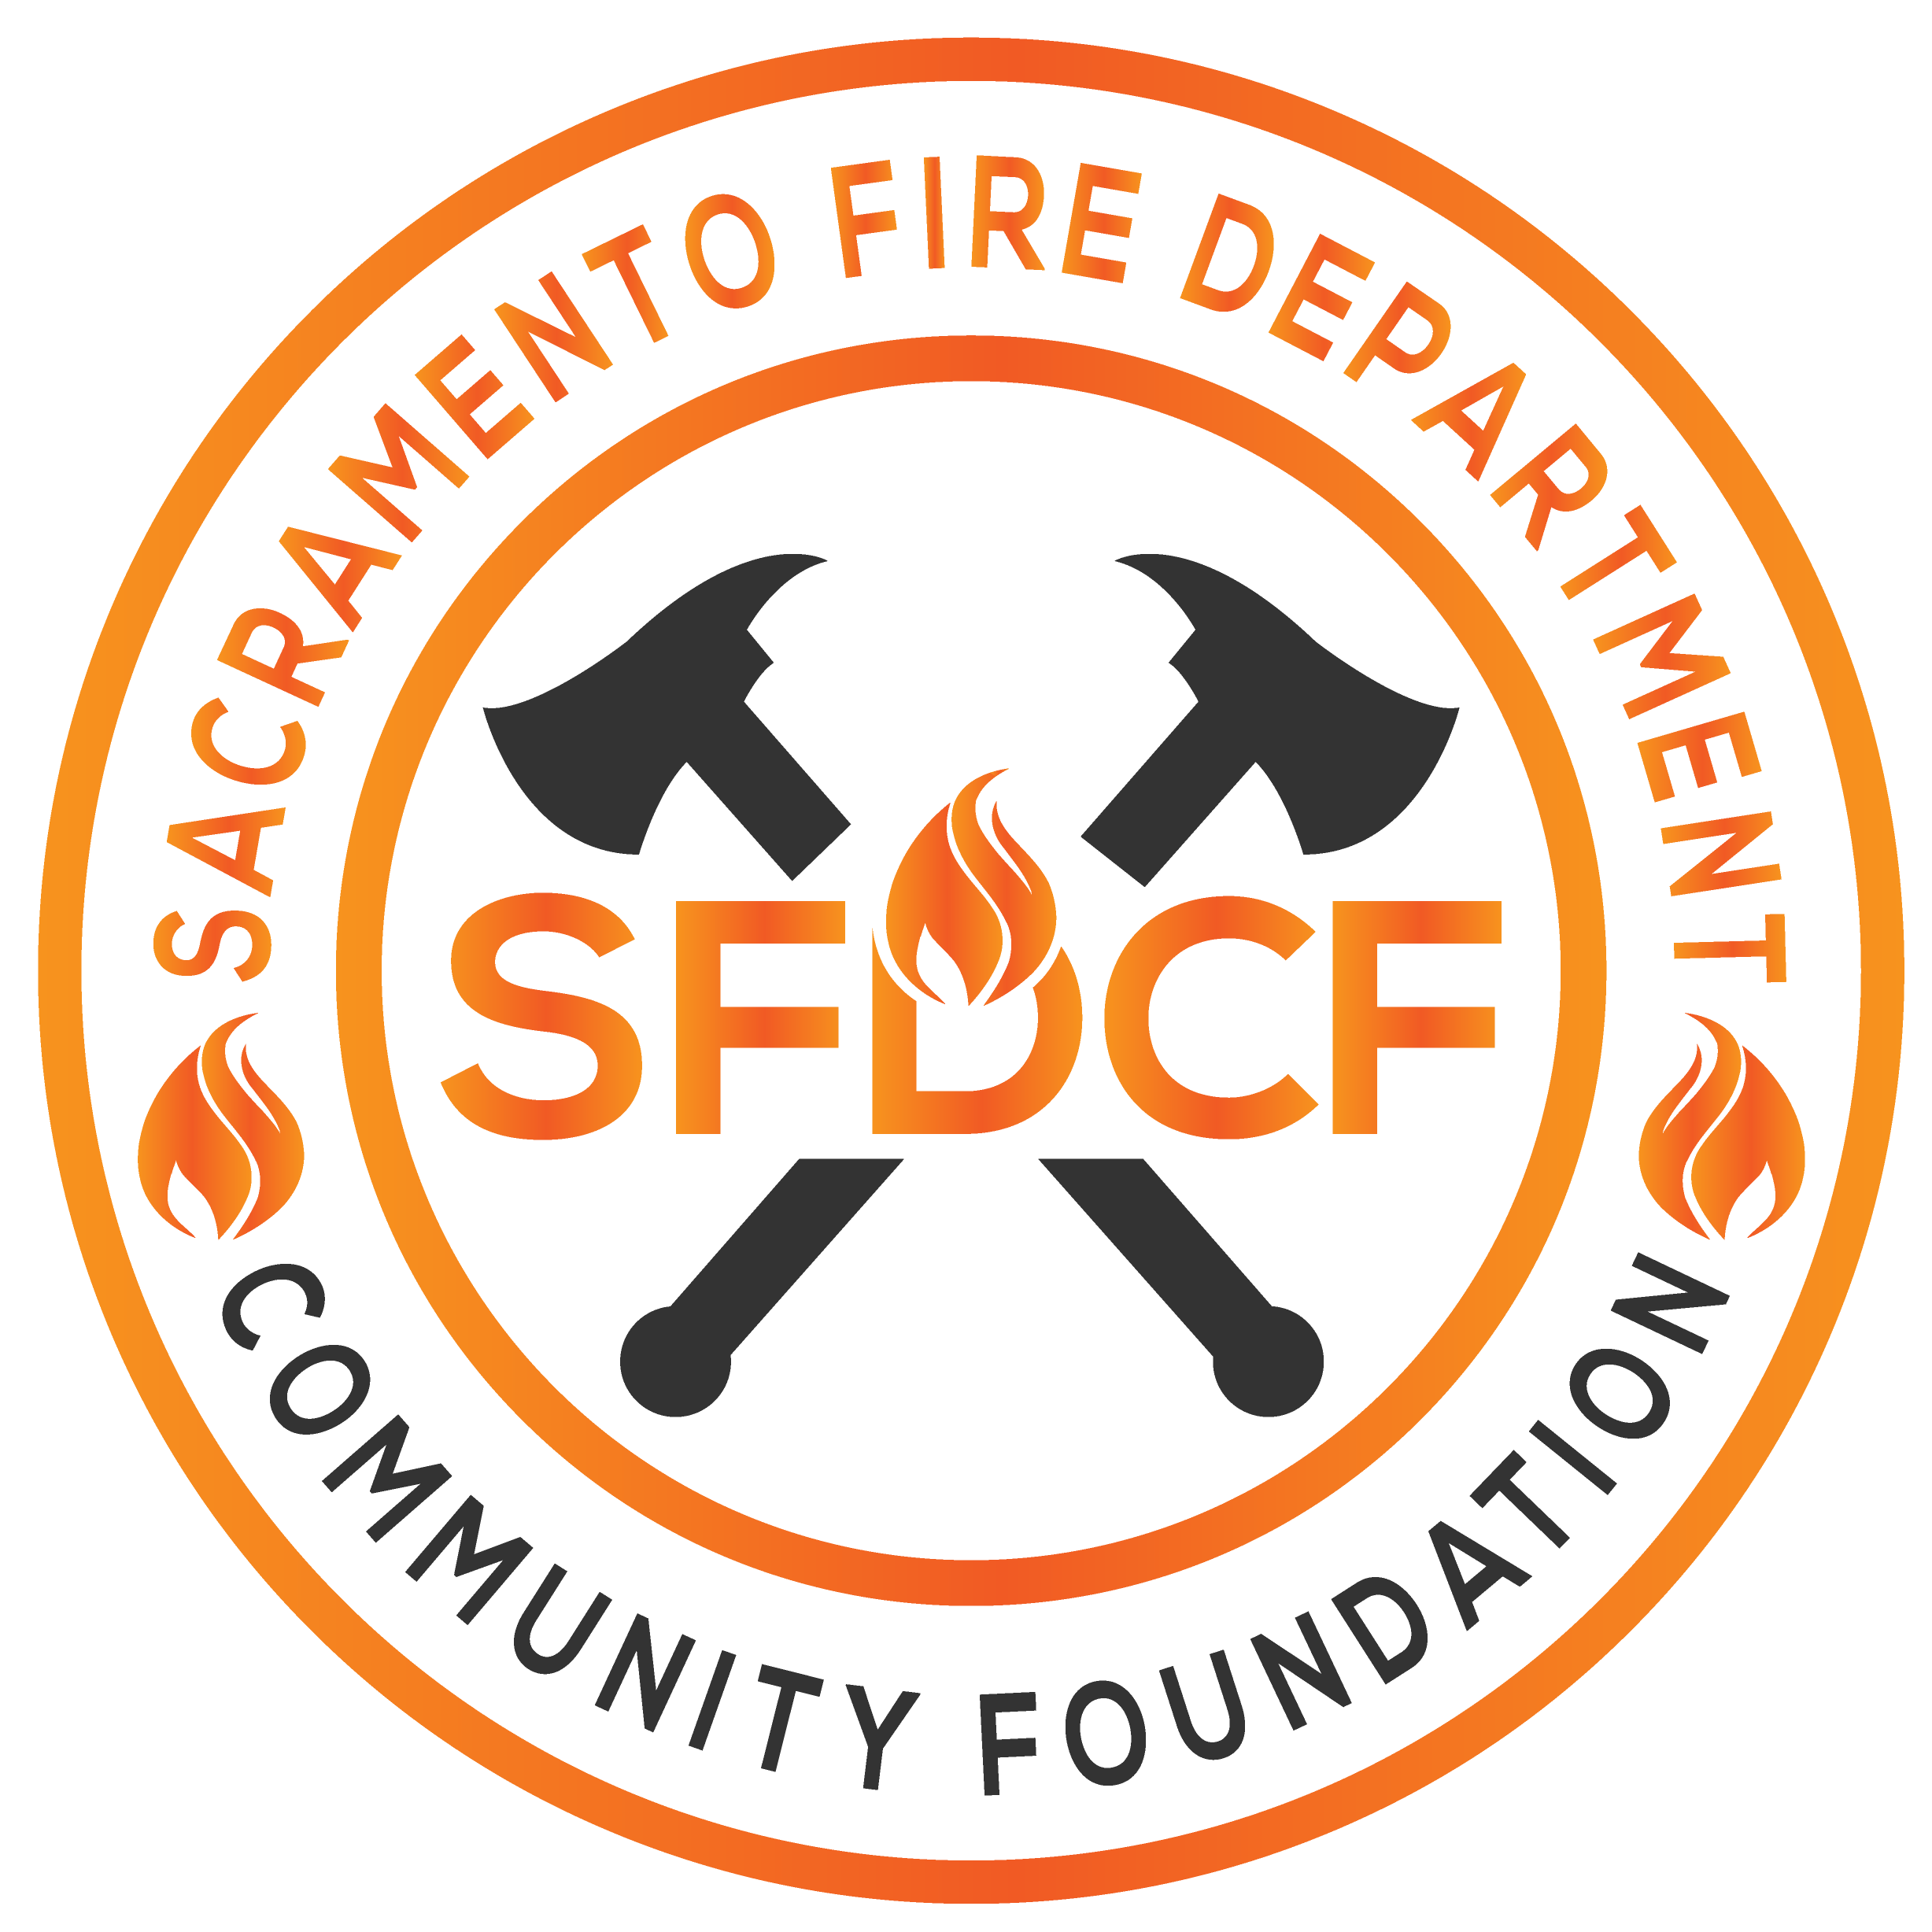 Sacramento Fire Department and Community Foundation